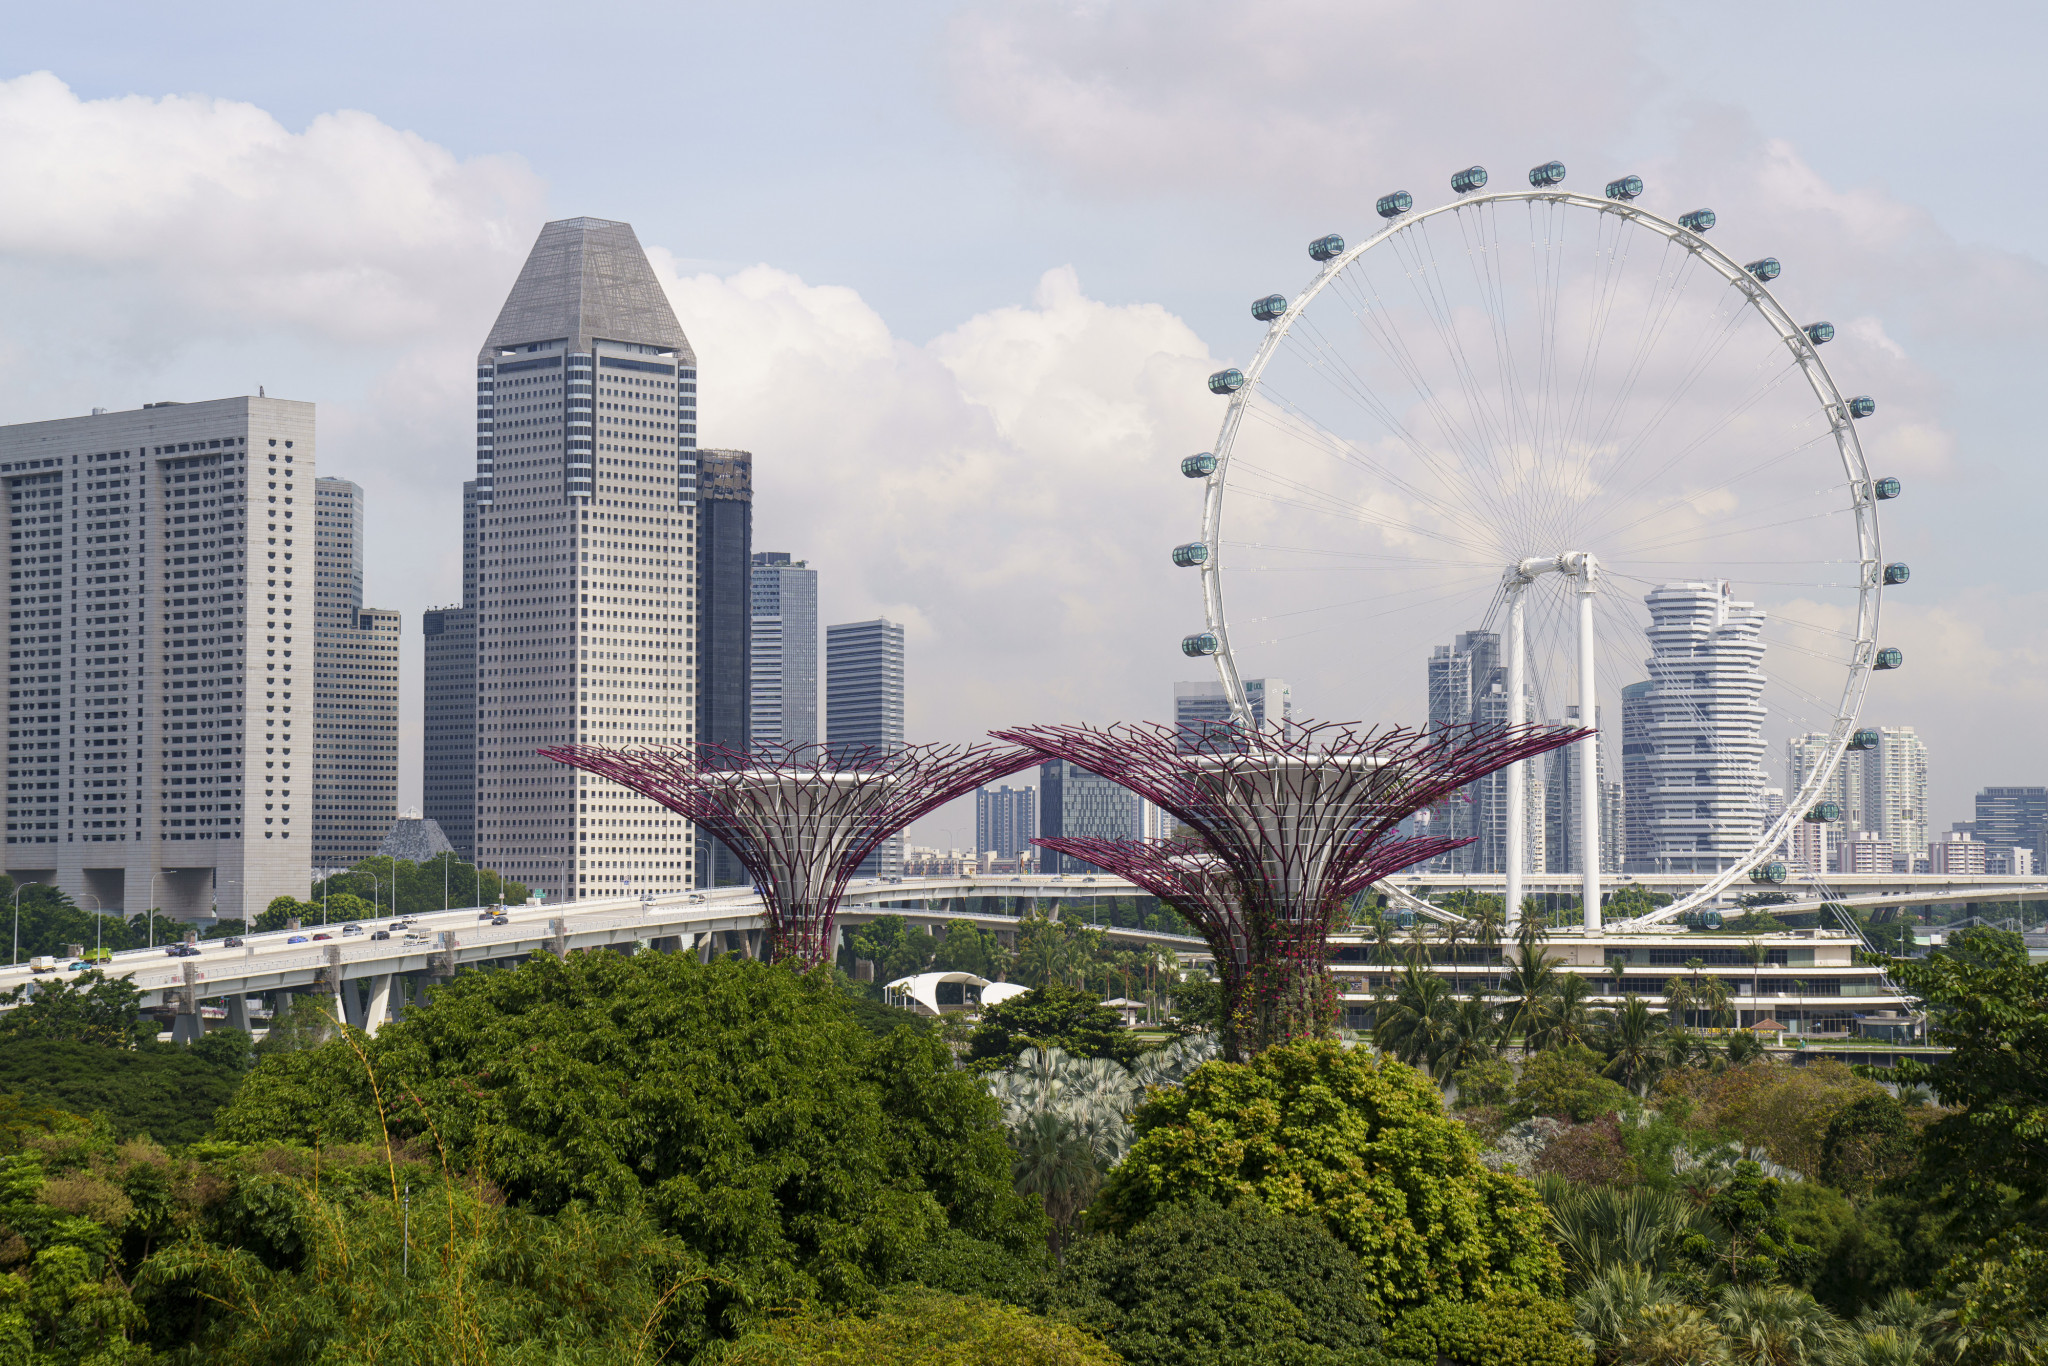 Singapore is set to host the M2 World Championship in January ©Getty Images